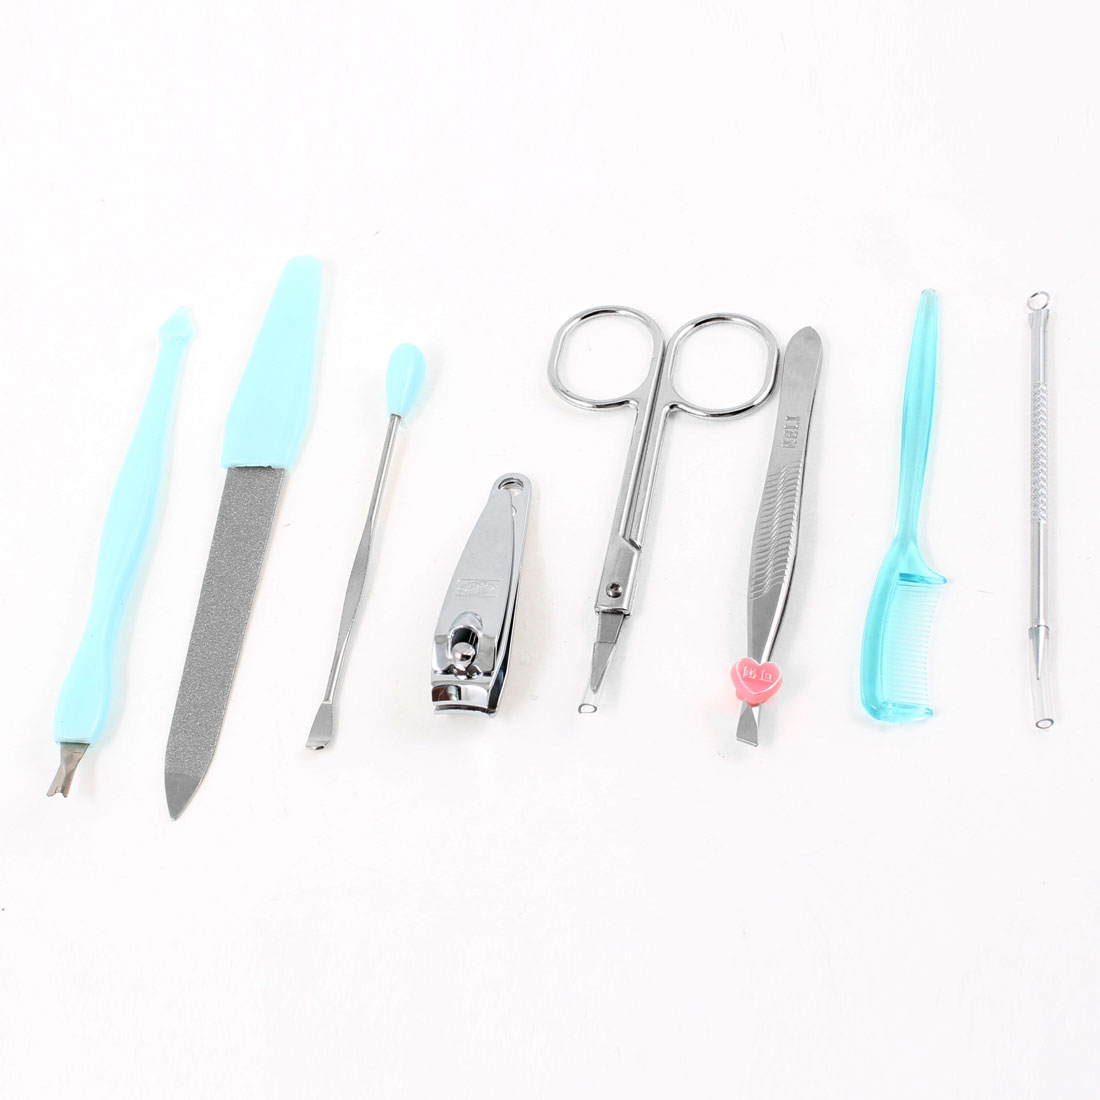 8 in 1 Beauty Care Nail Clipper File Tweezers Manicure Tool Set for Woman